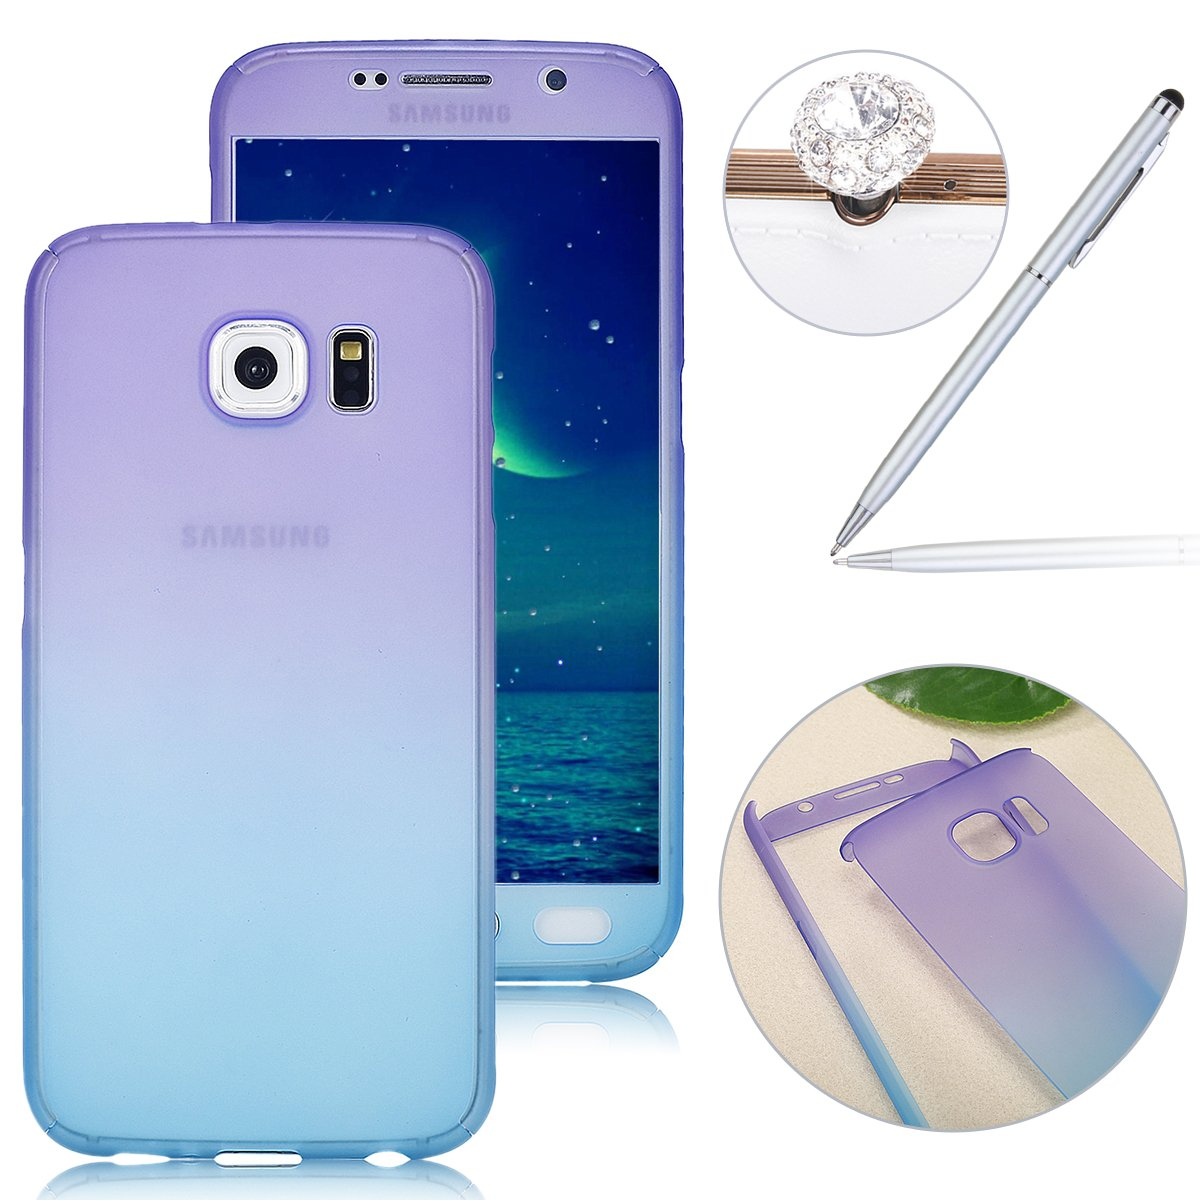 Galaxy S6 Case-Felfy 360 Degree Protective Cover Case for Galaxy S6, Galaxy S6 2 in 1 PC Tempered Film Full Body Rubber Case with Gradient Color Transparent Gel Glitter Front and Back Protection Shockproof Hard Case for Samsung Galaxy S6 + 1 Stylus Pen + 1